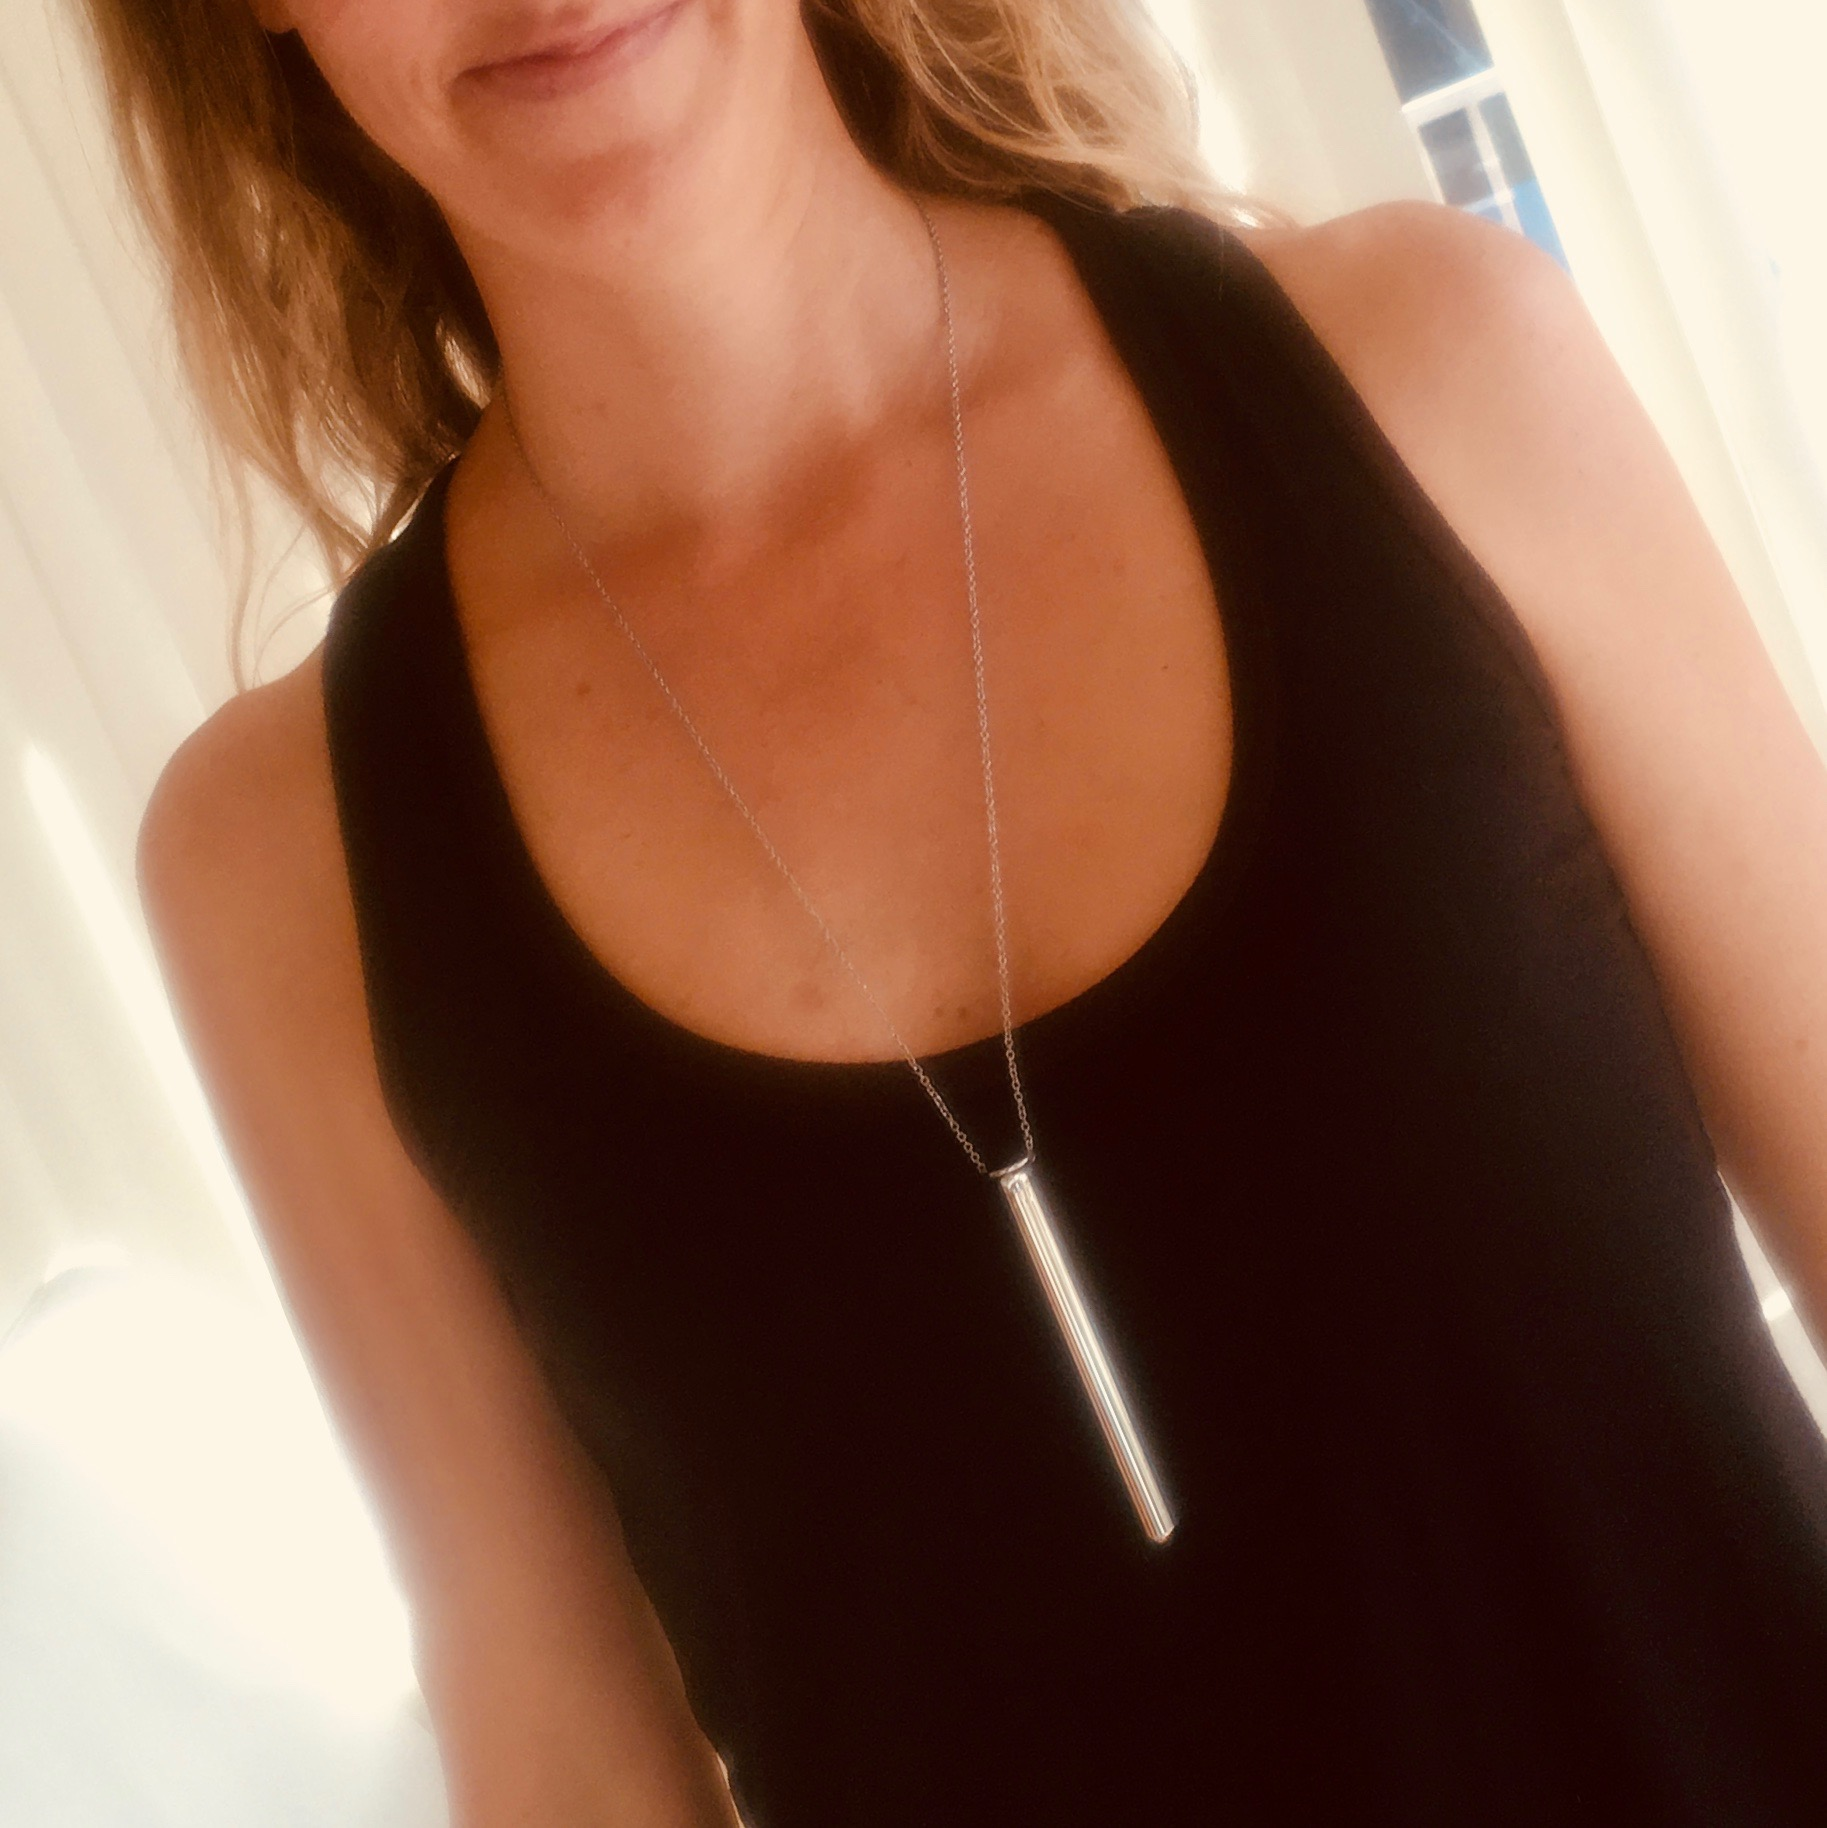 Sneaky Vibrators - I turn myself on when... I wear my vibrator necklace.I am in love with this powerful little necklace. It's fun knowing I'm out in public wearing a vibrator, both because most people don't know what it is, and because some people do know what it is.